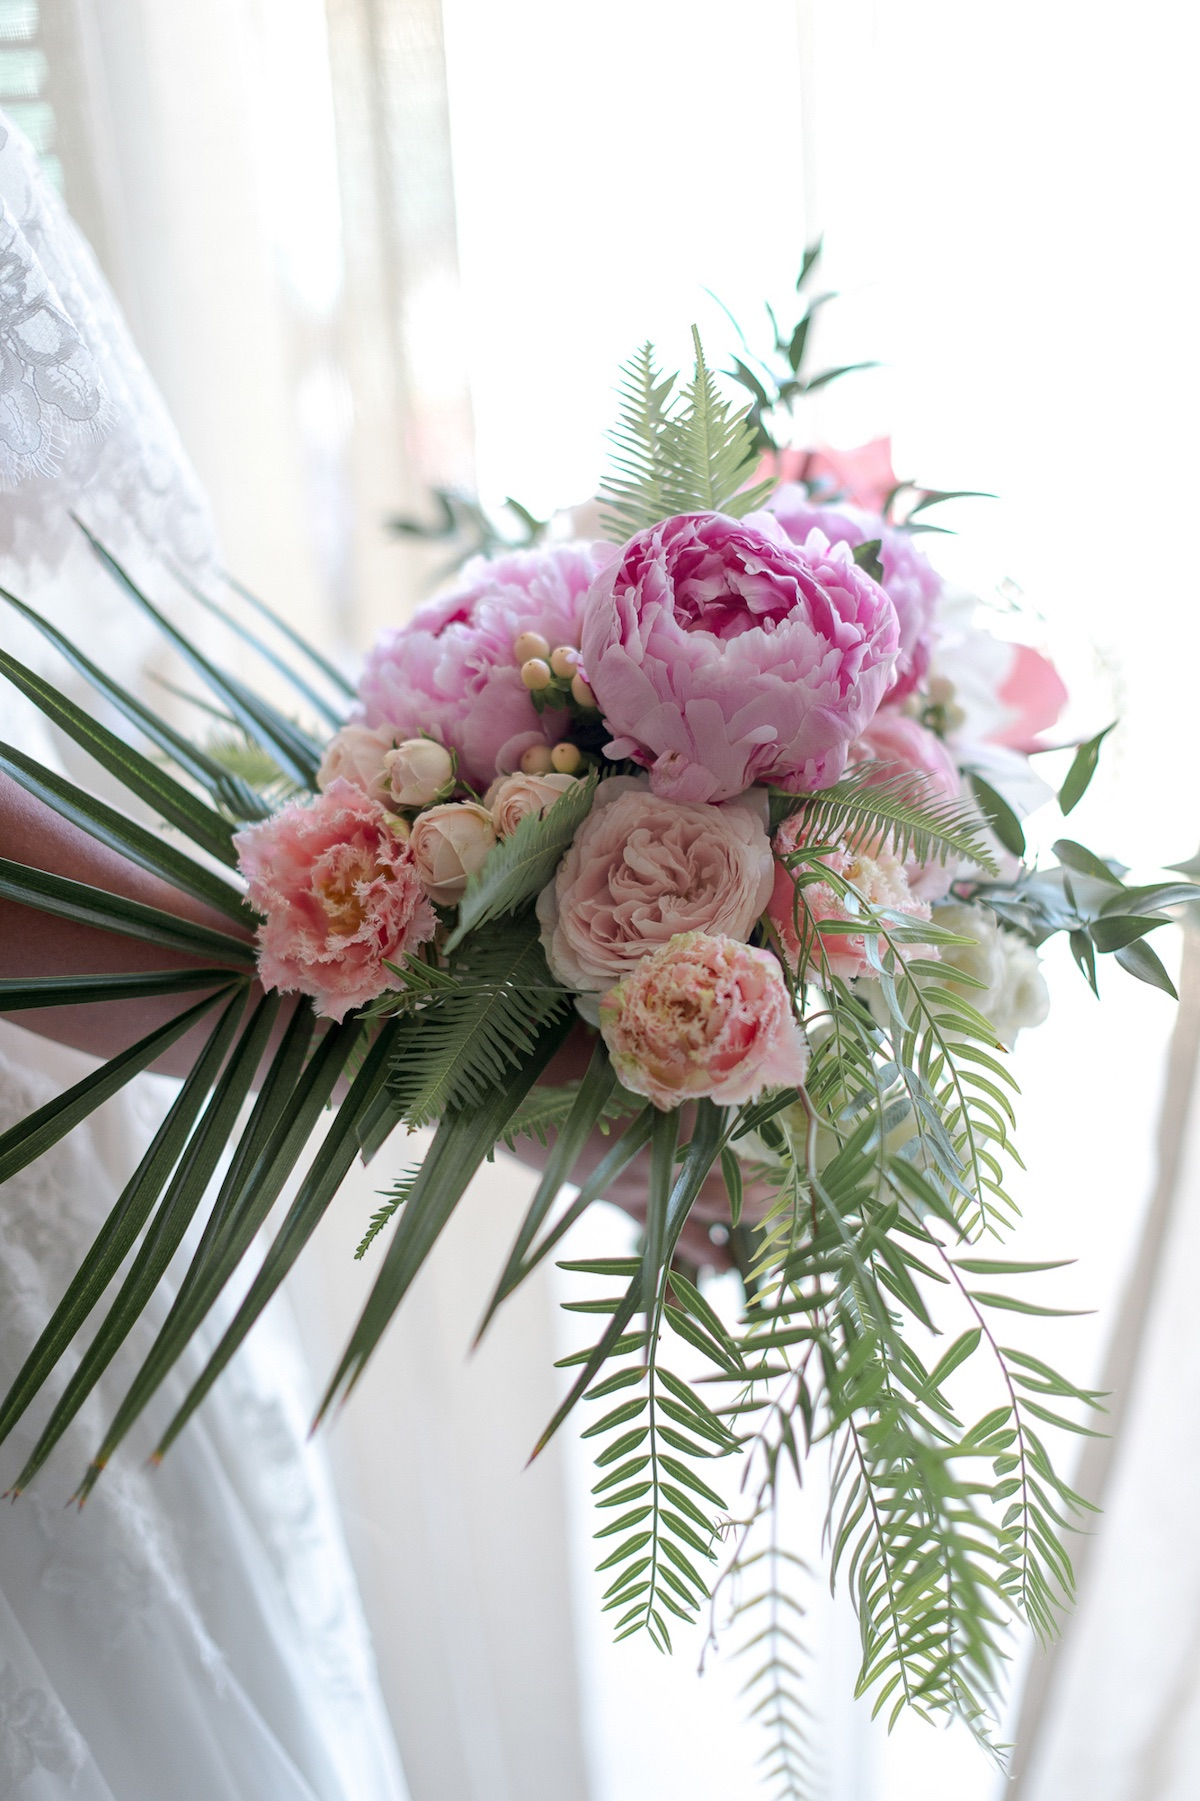 brides bouquet of Sarah Bernhardt peonies with frilled tulips and palms for a tropical feel.